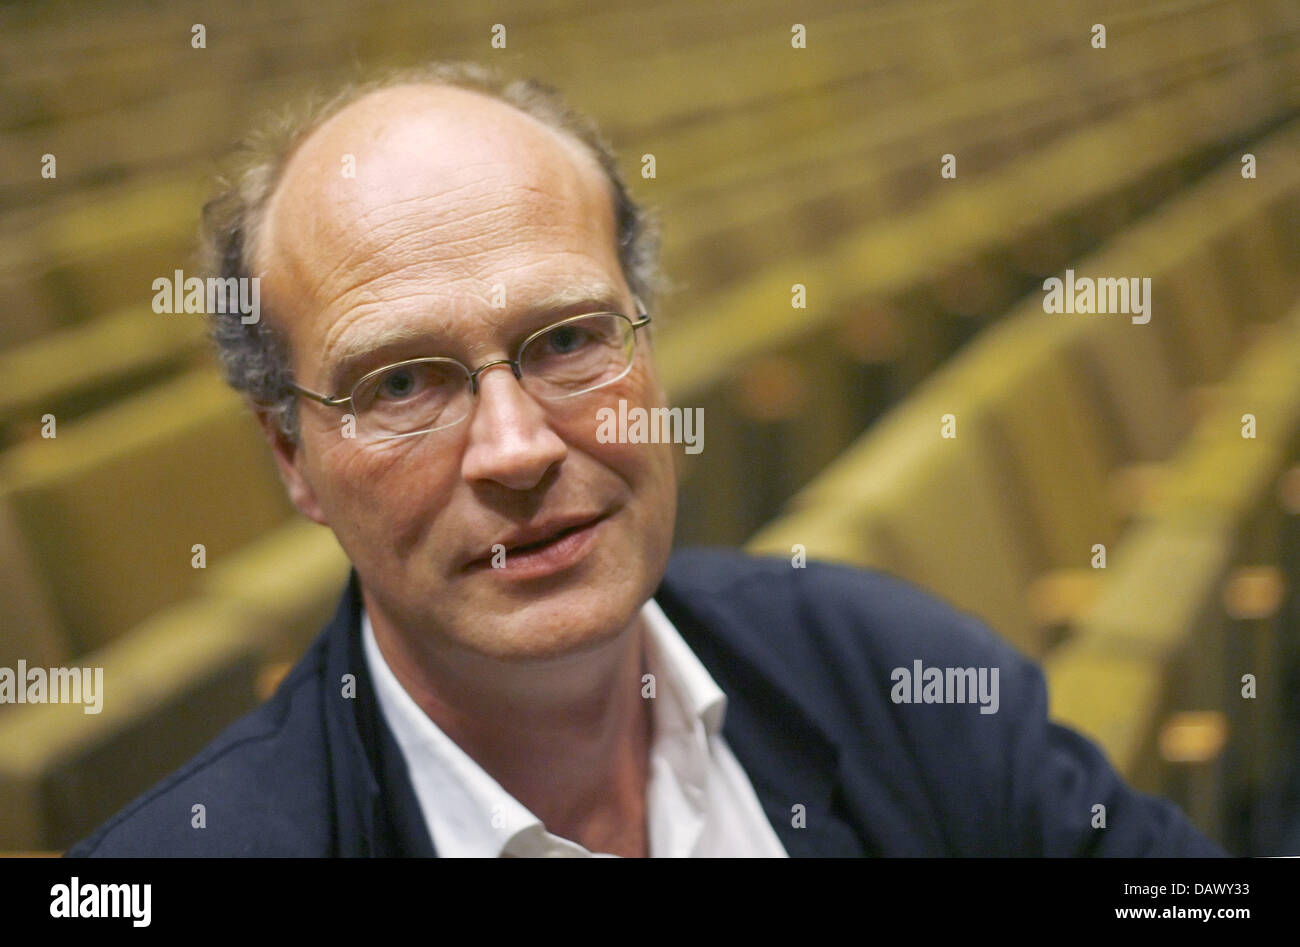 Chief dramaturg of the Burgtheatre in Vienna, Joachim Lux, is pictured in Berlin, Germany, Saturday, 12 May 2007. Stock Photo